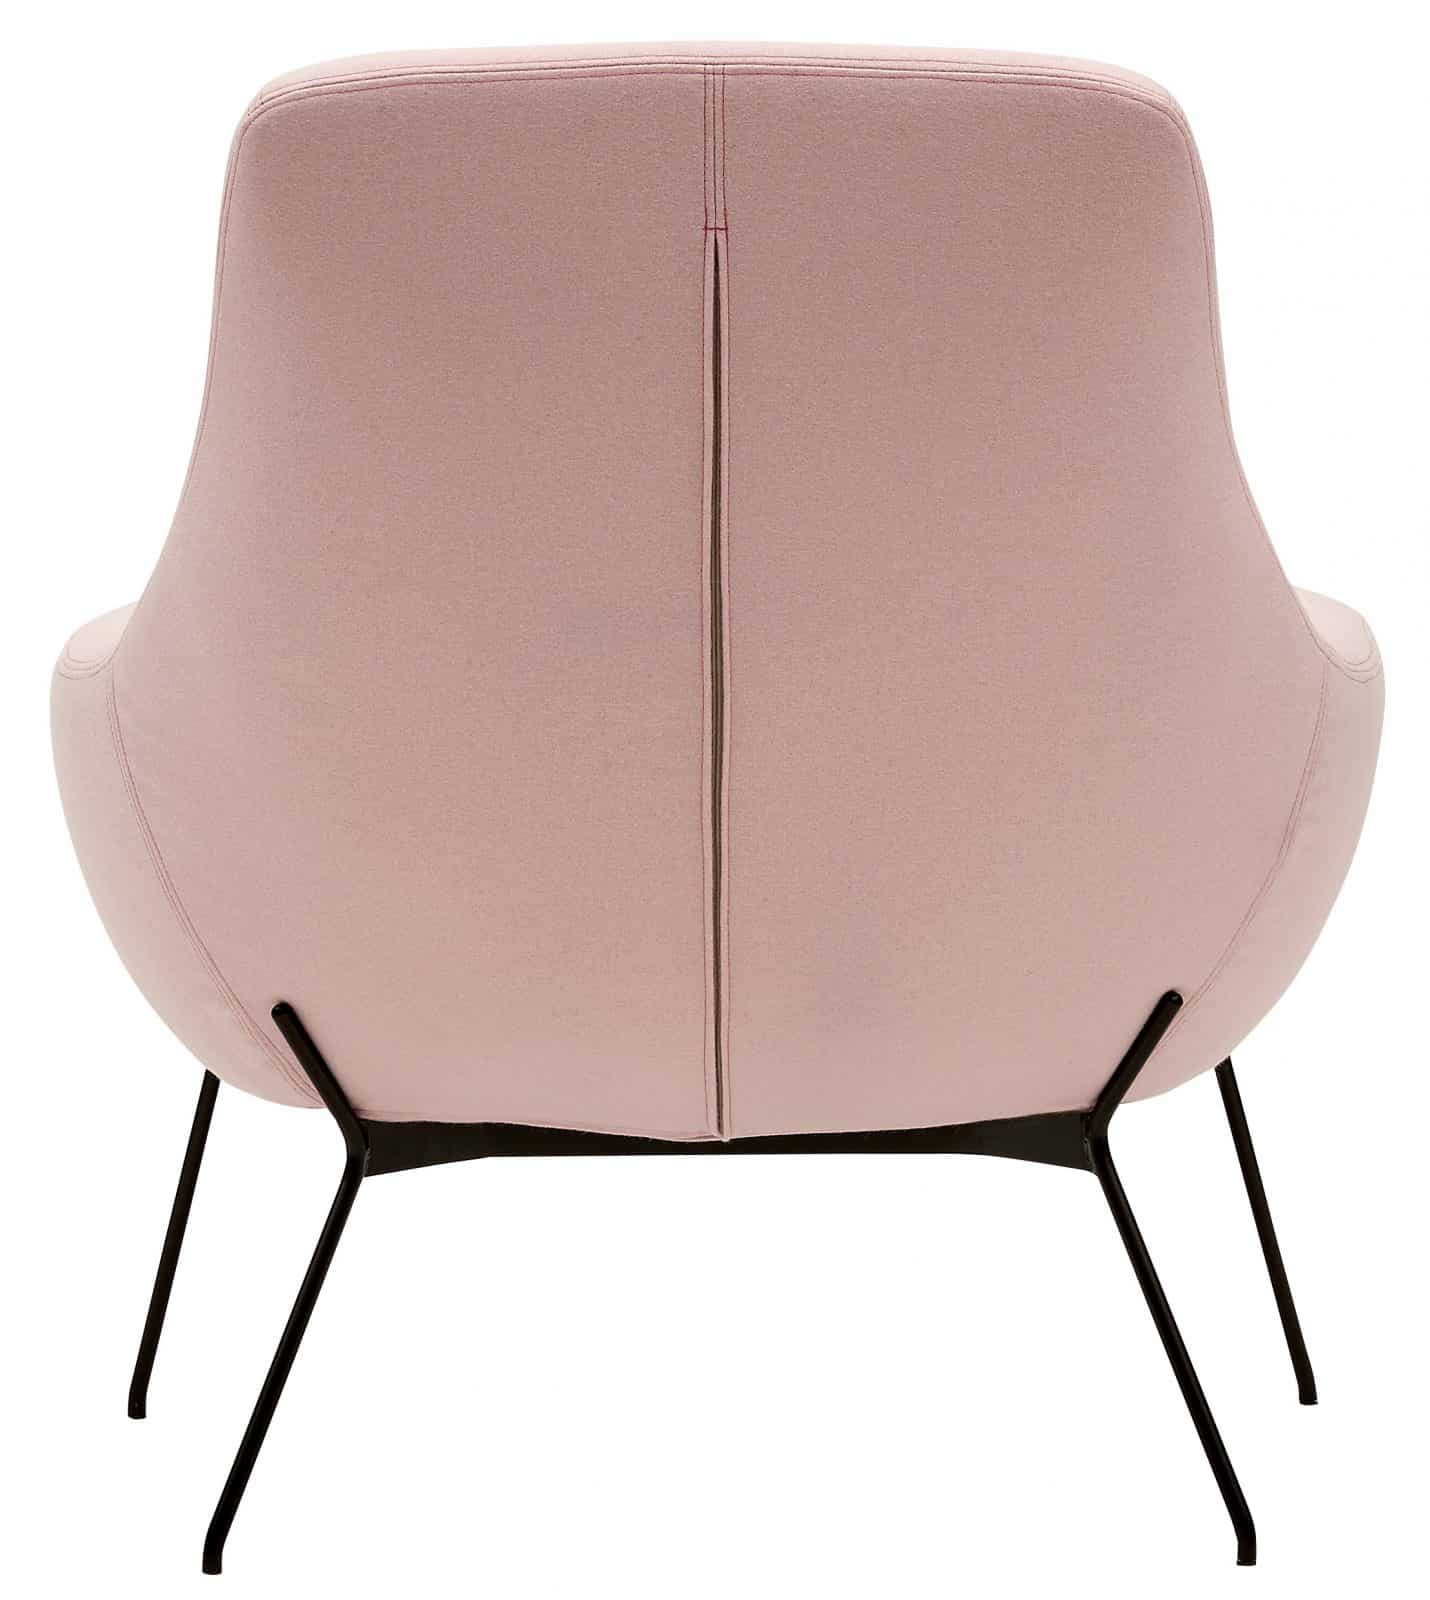 Noomi String Lounge Chair Telegraph Contract Furniture